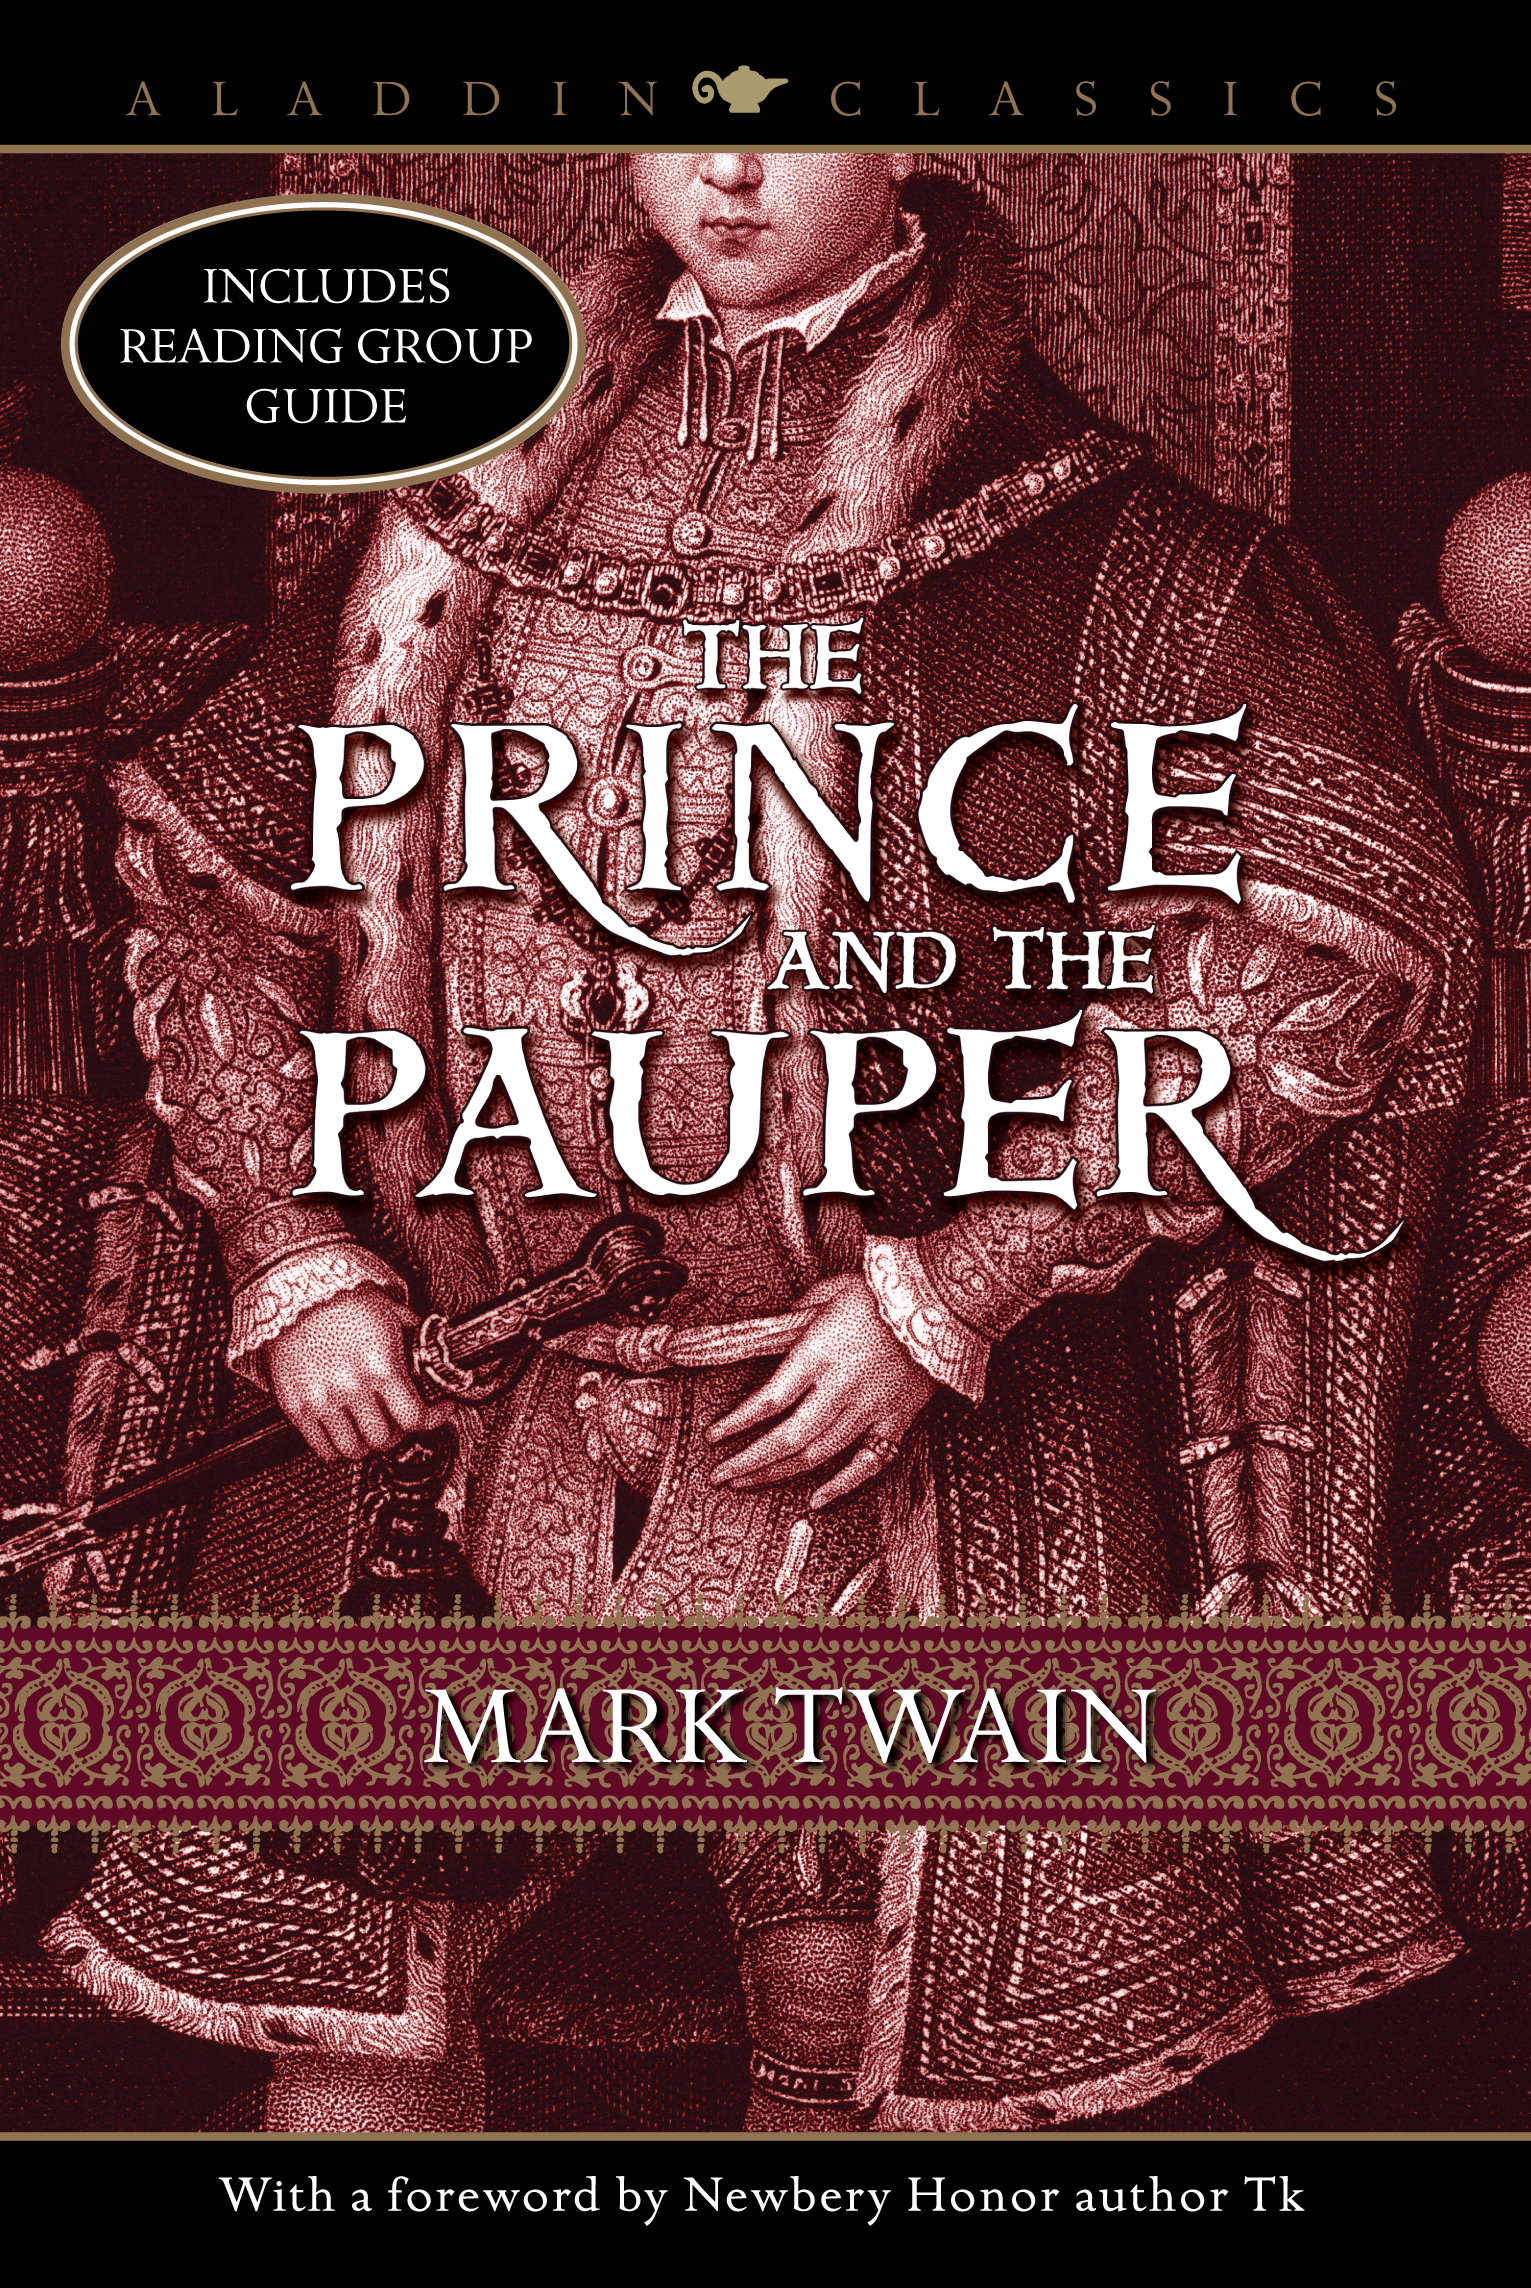 The Prince and the Pauper Summary